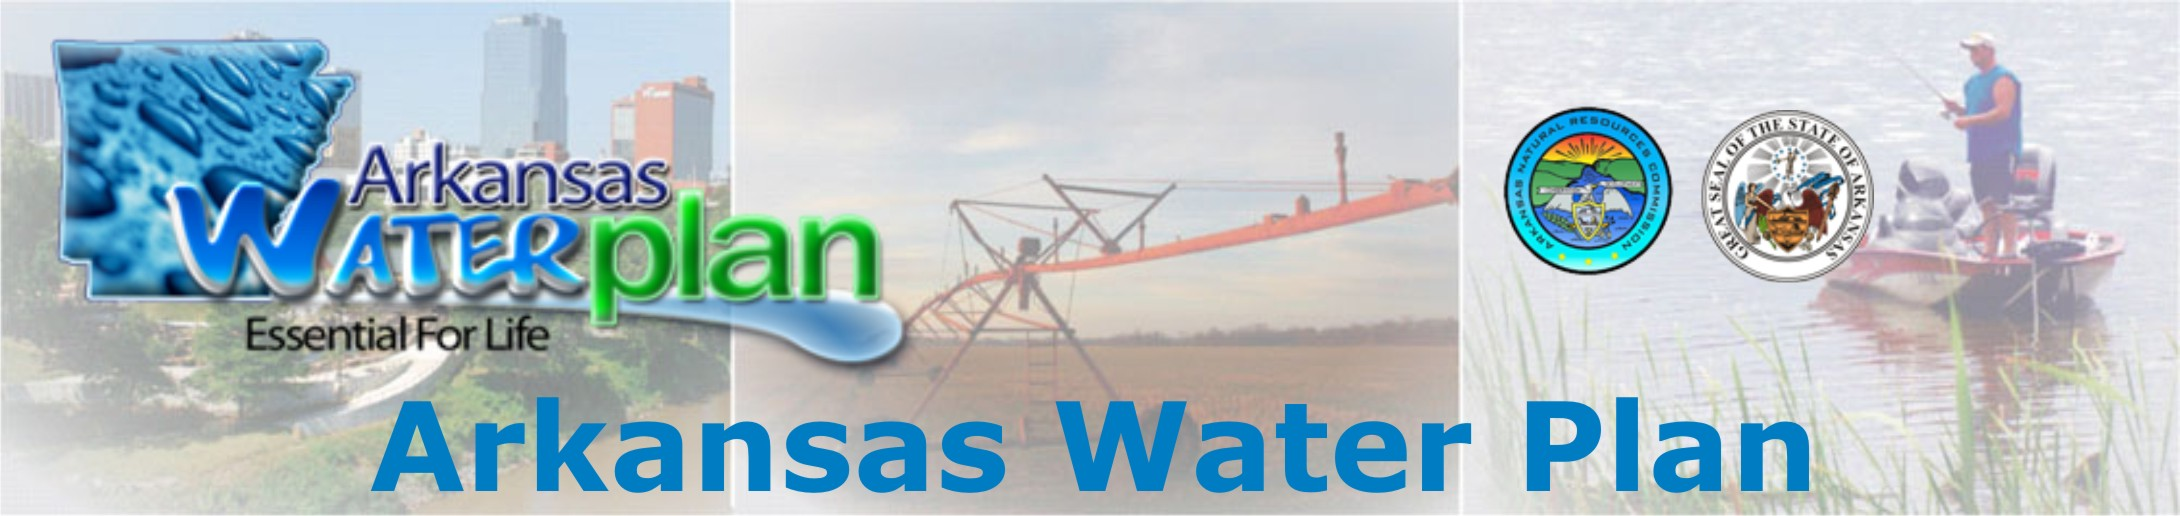 Arkansas Water Plan Banner